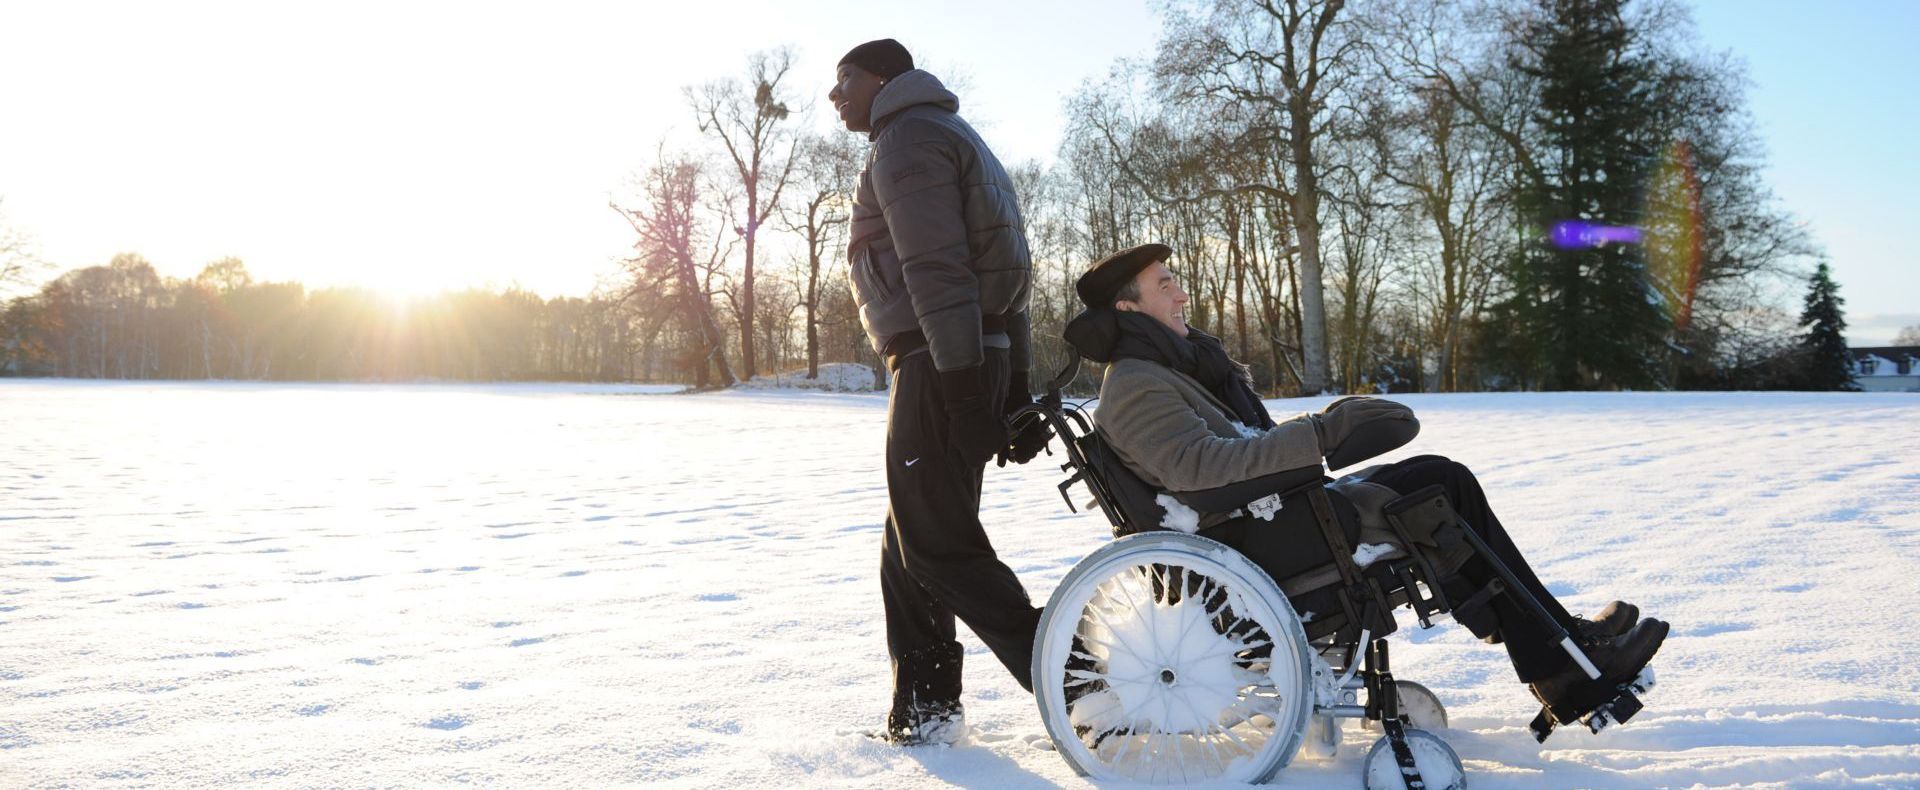 An image from The Intouchables